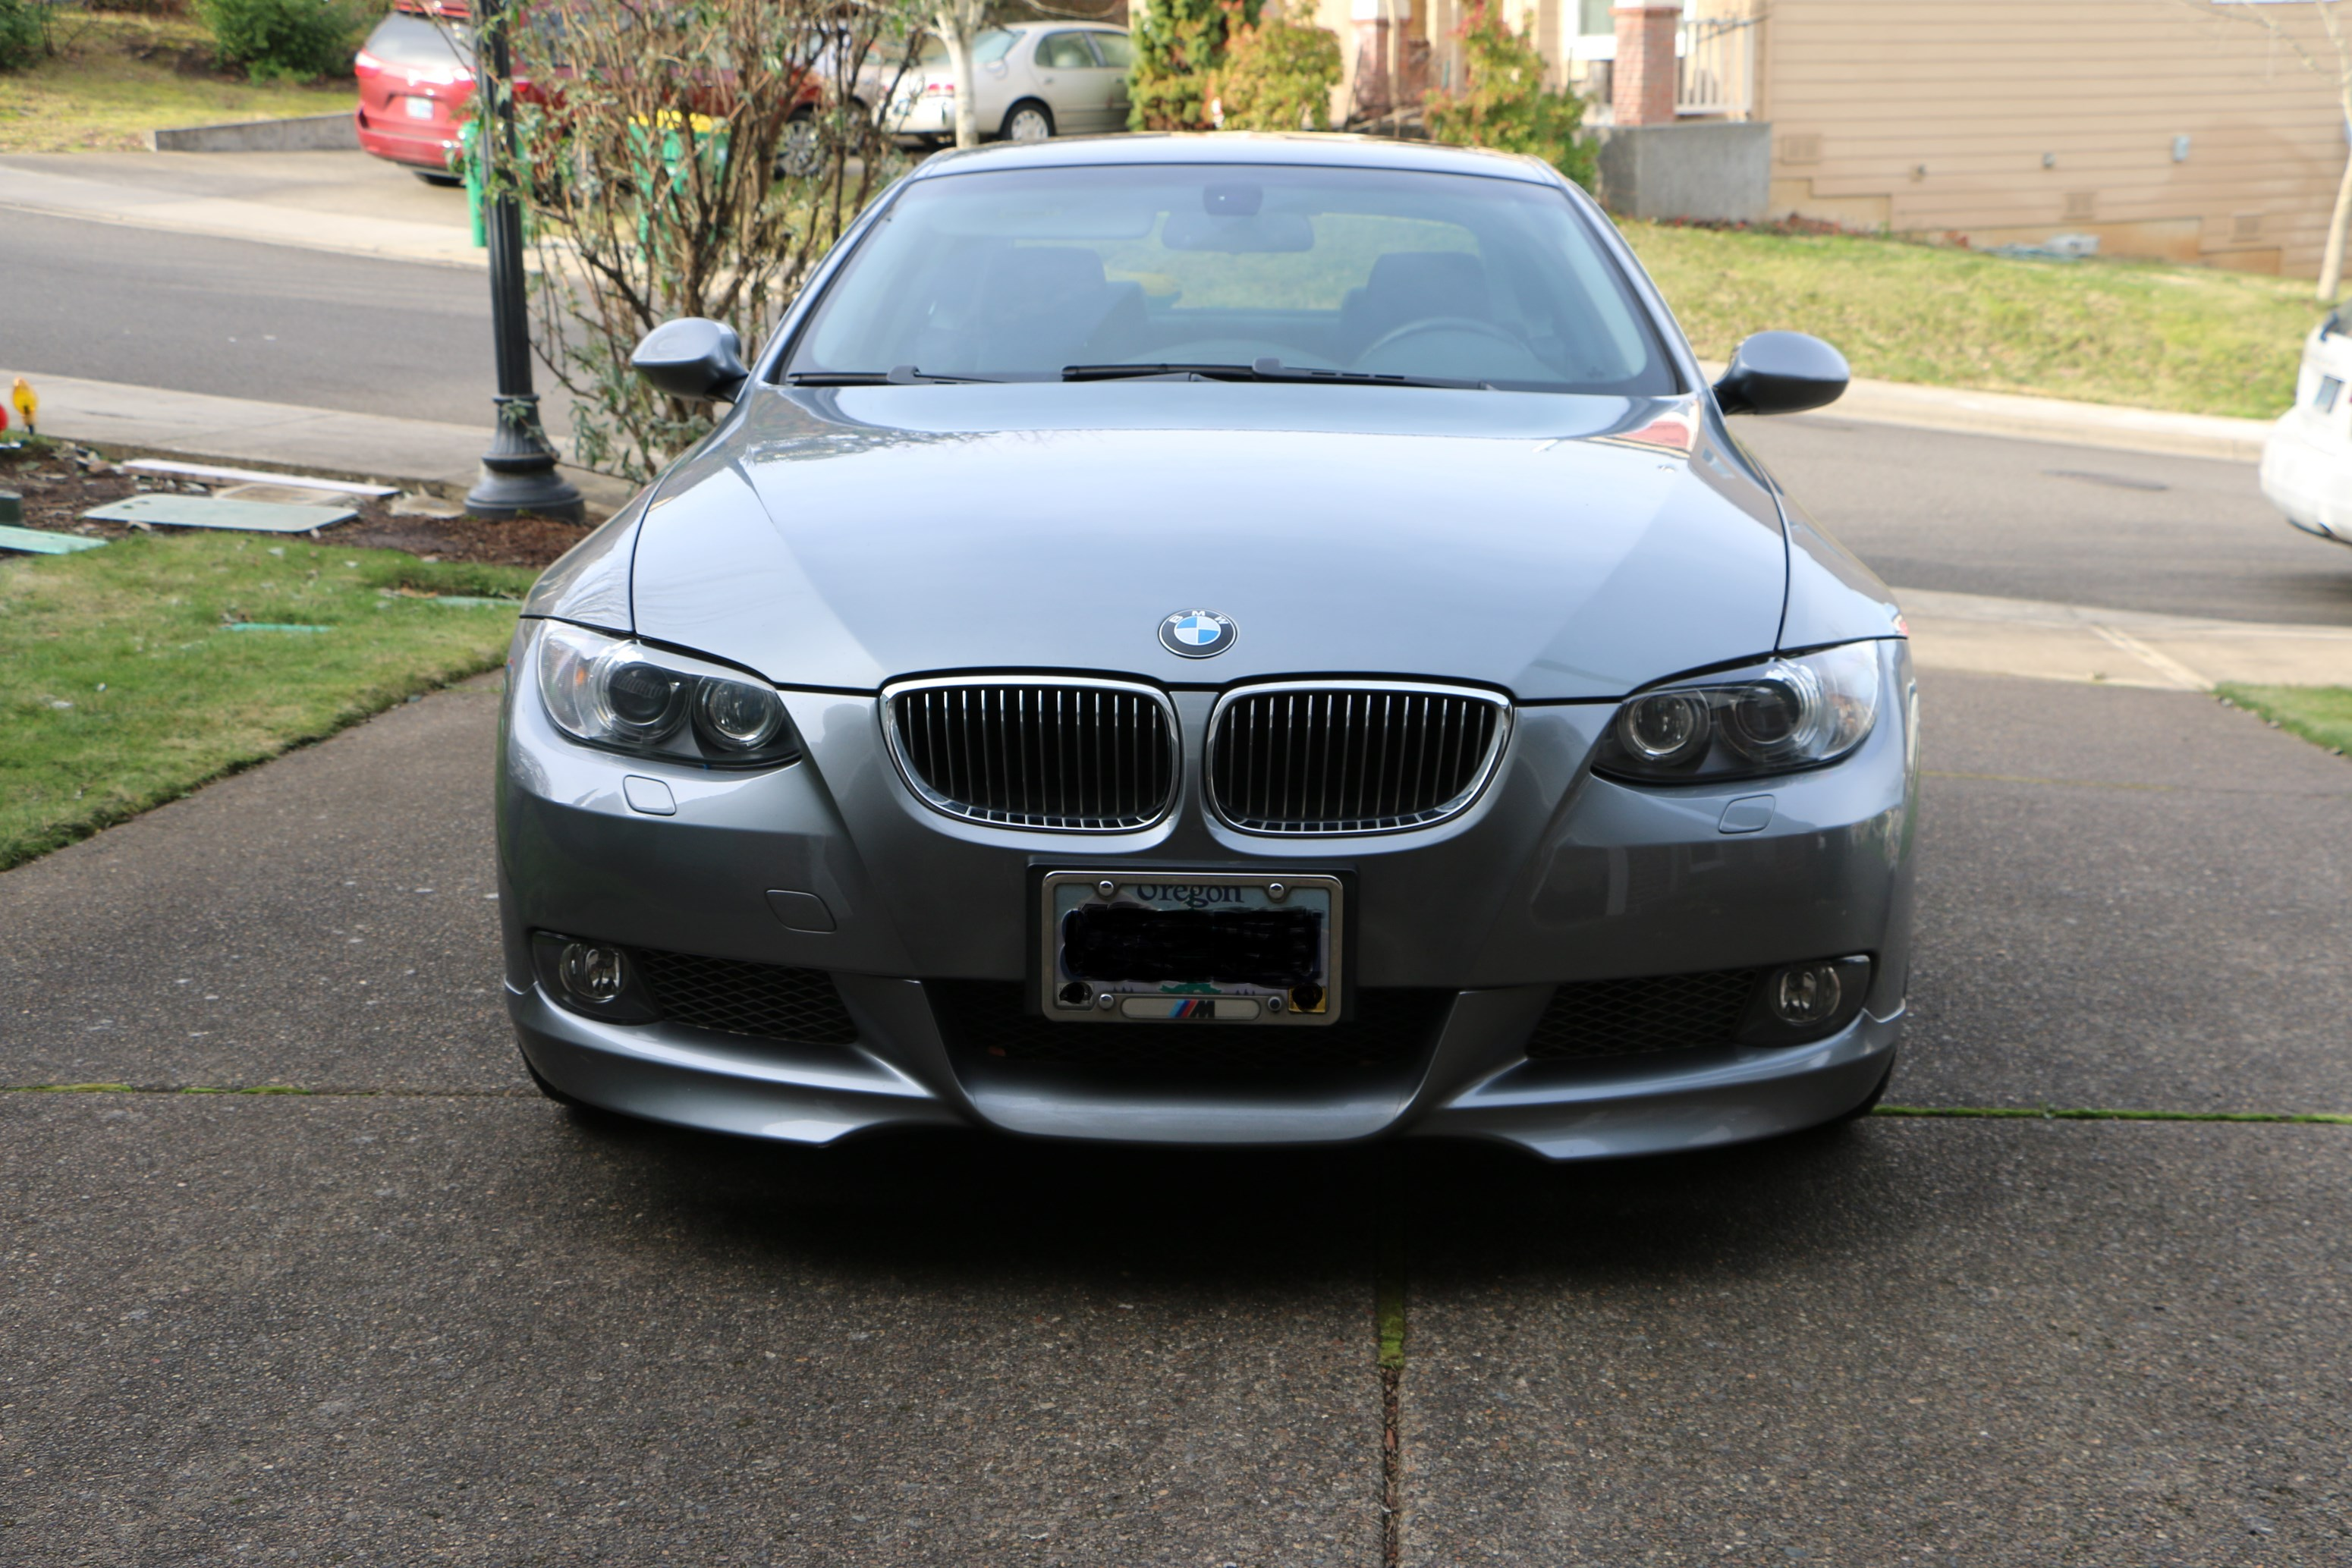 BMW I Coupe For Sale Used BMW Series Cars In Beaverton - 335i bmw coupe for sale